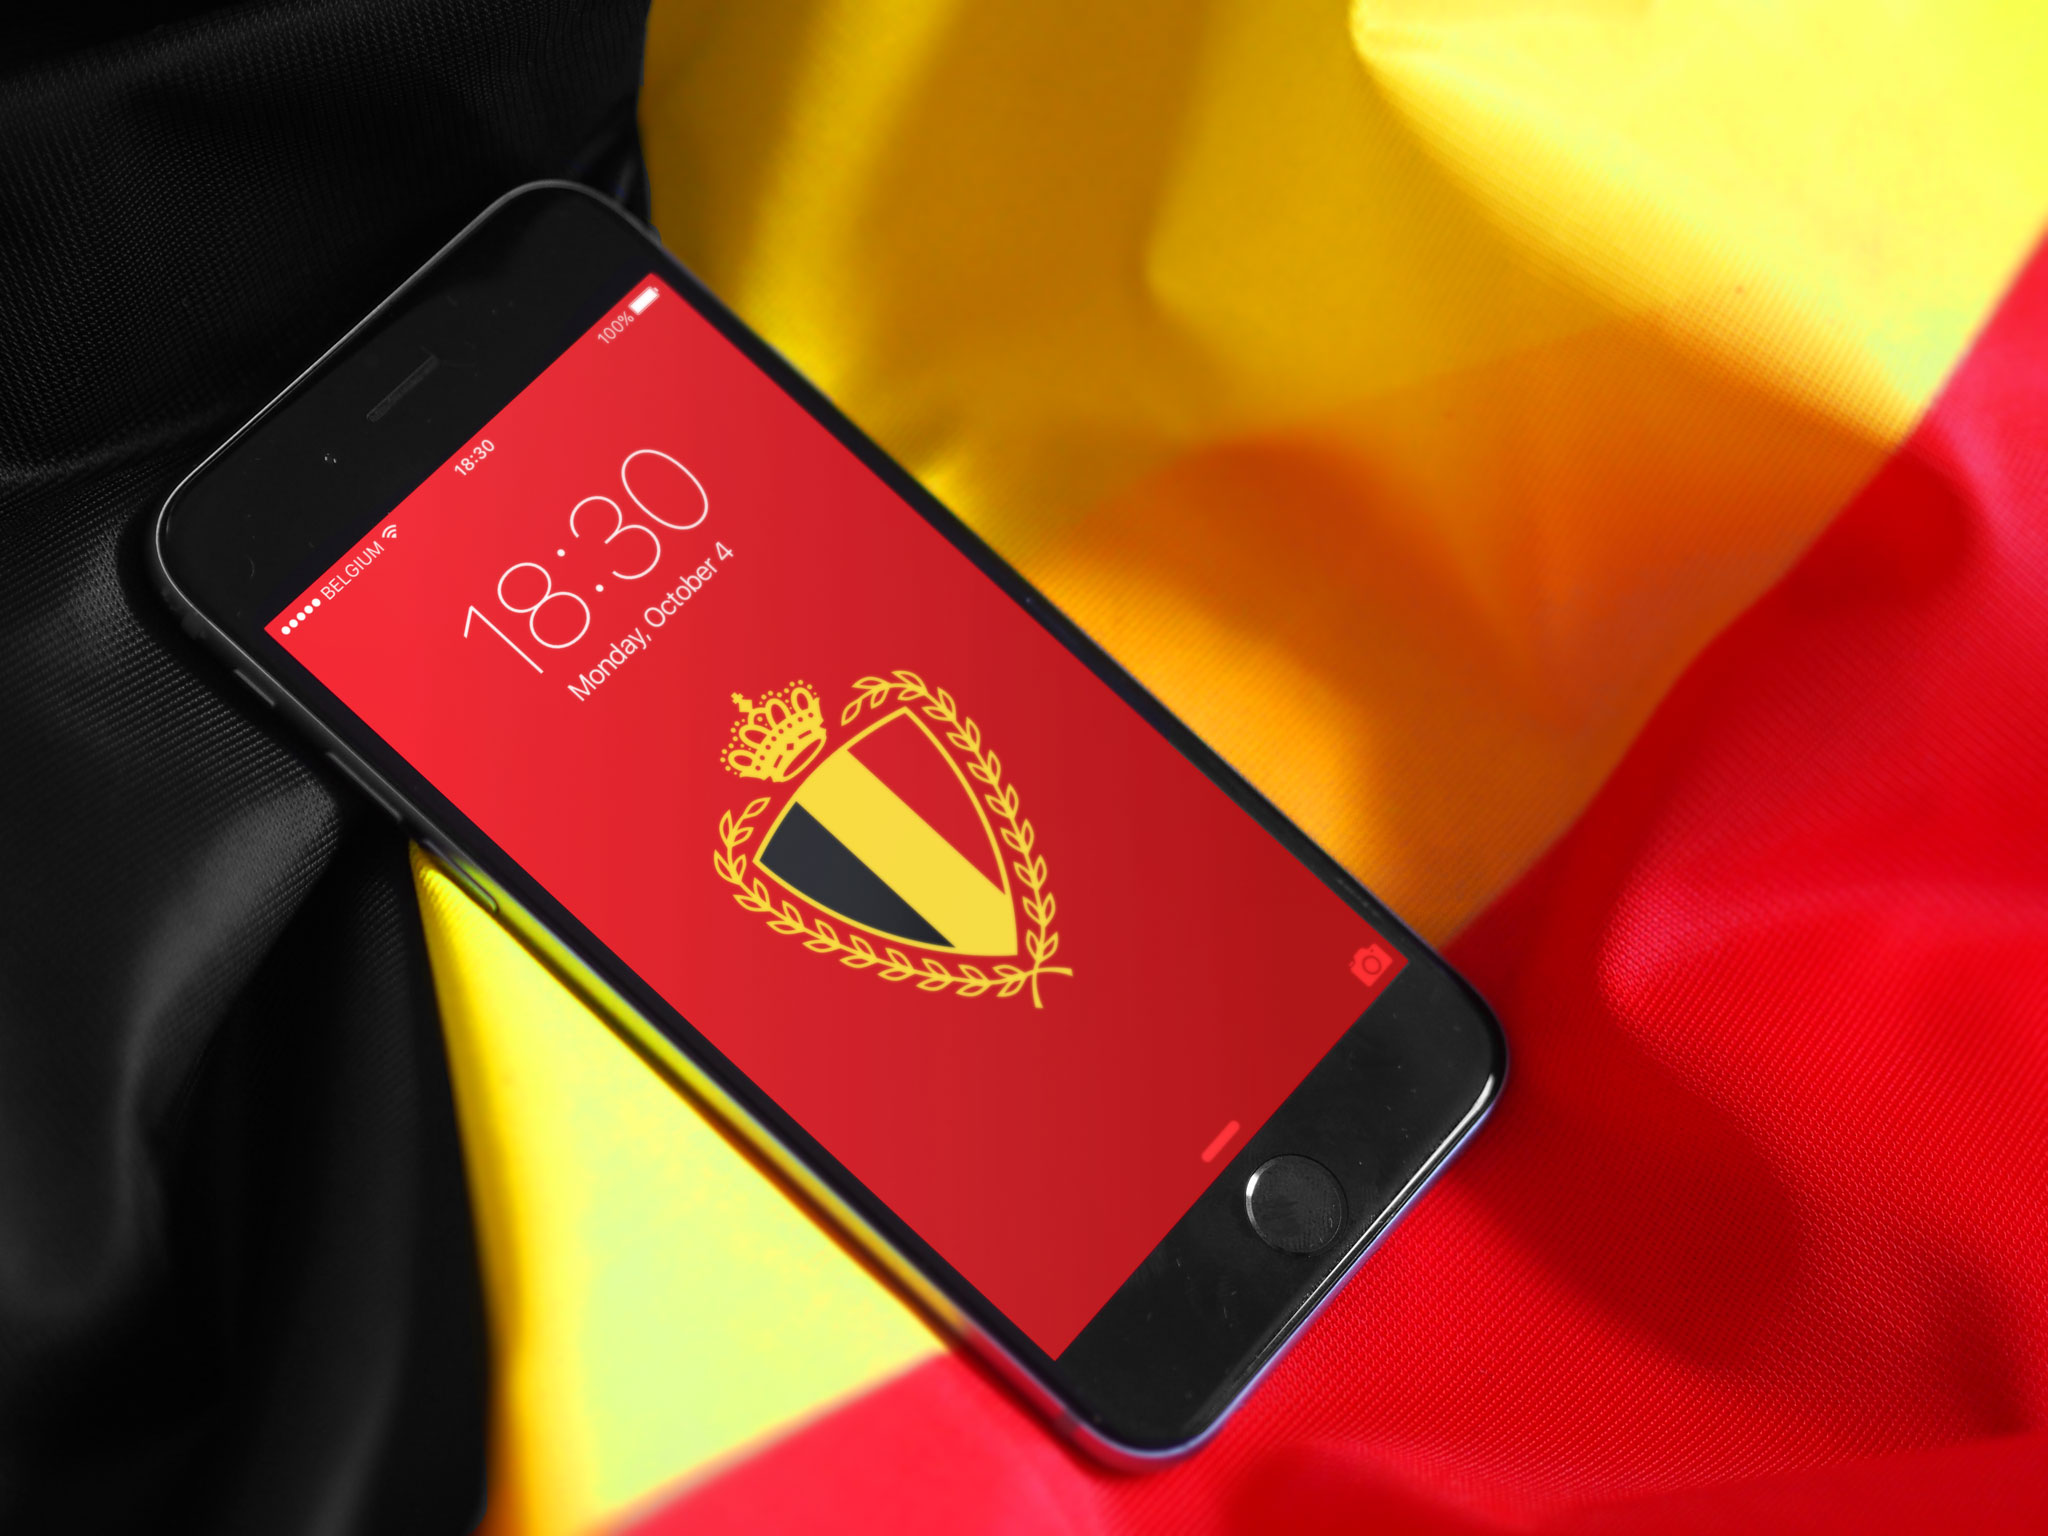 belgian red devils wallpaper on iphone with belgian flag background